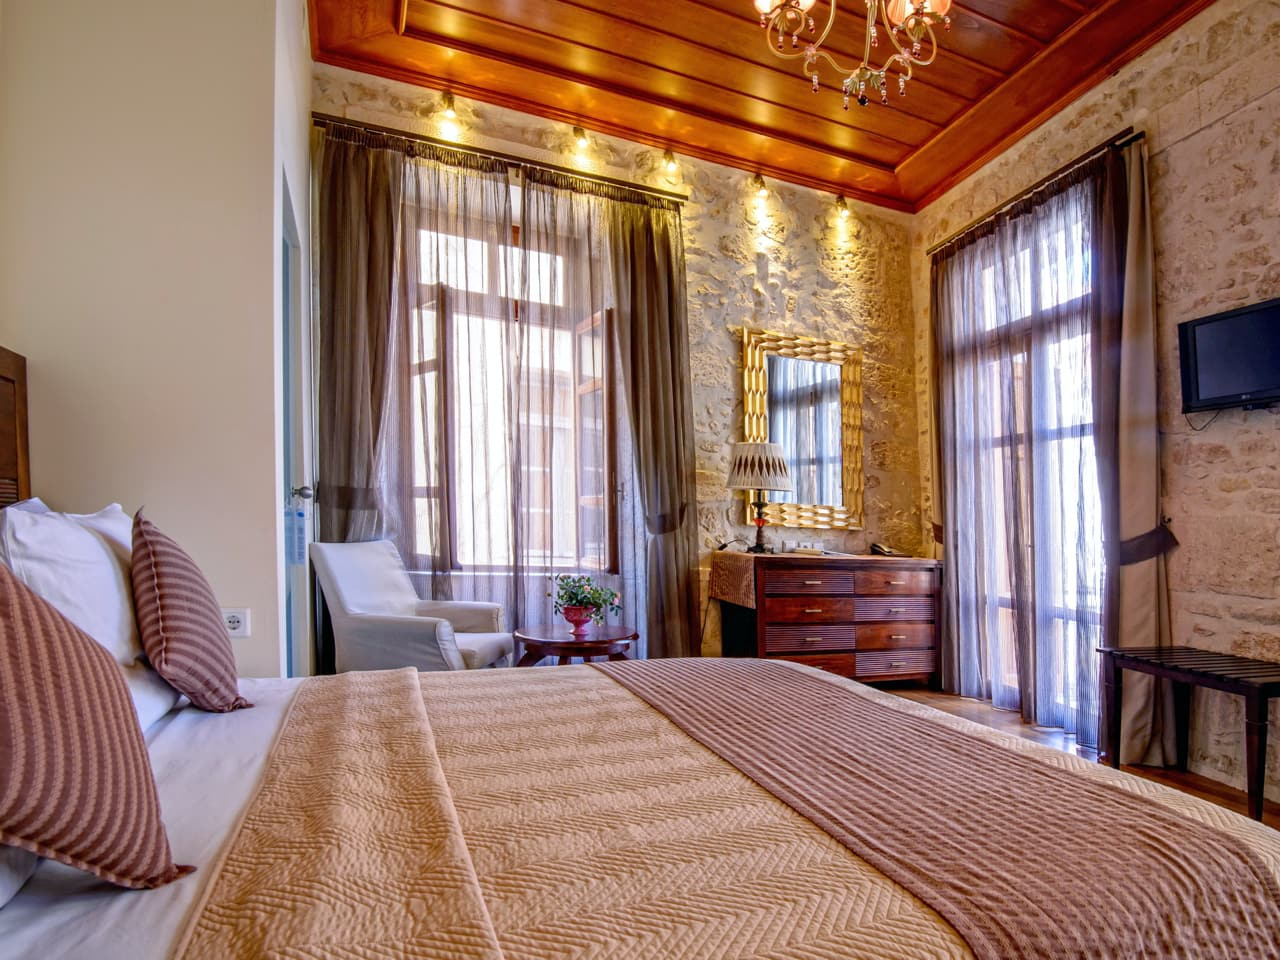 Hotel Leo : Two Storey Building Of 15th Century, The Former Residence Of Venetian Local Governor